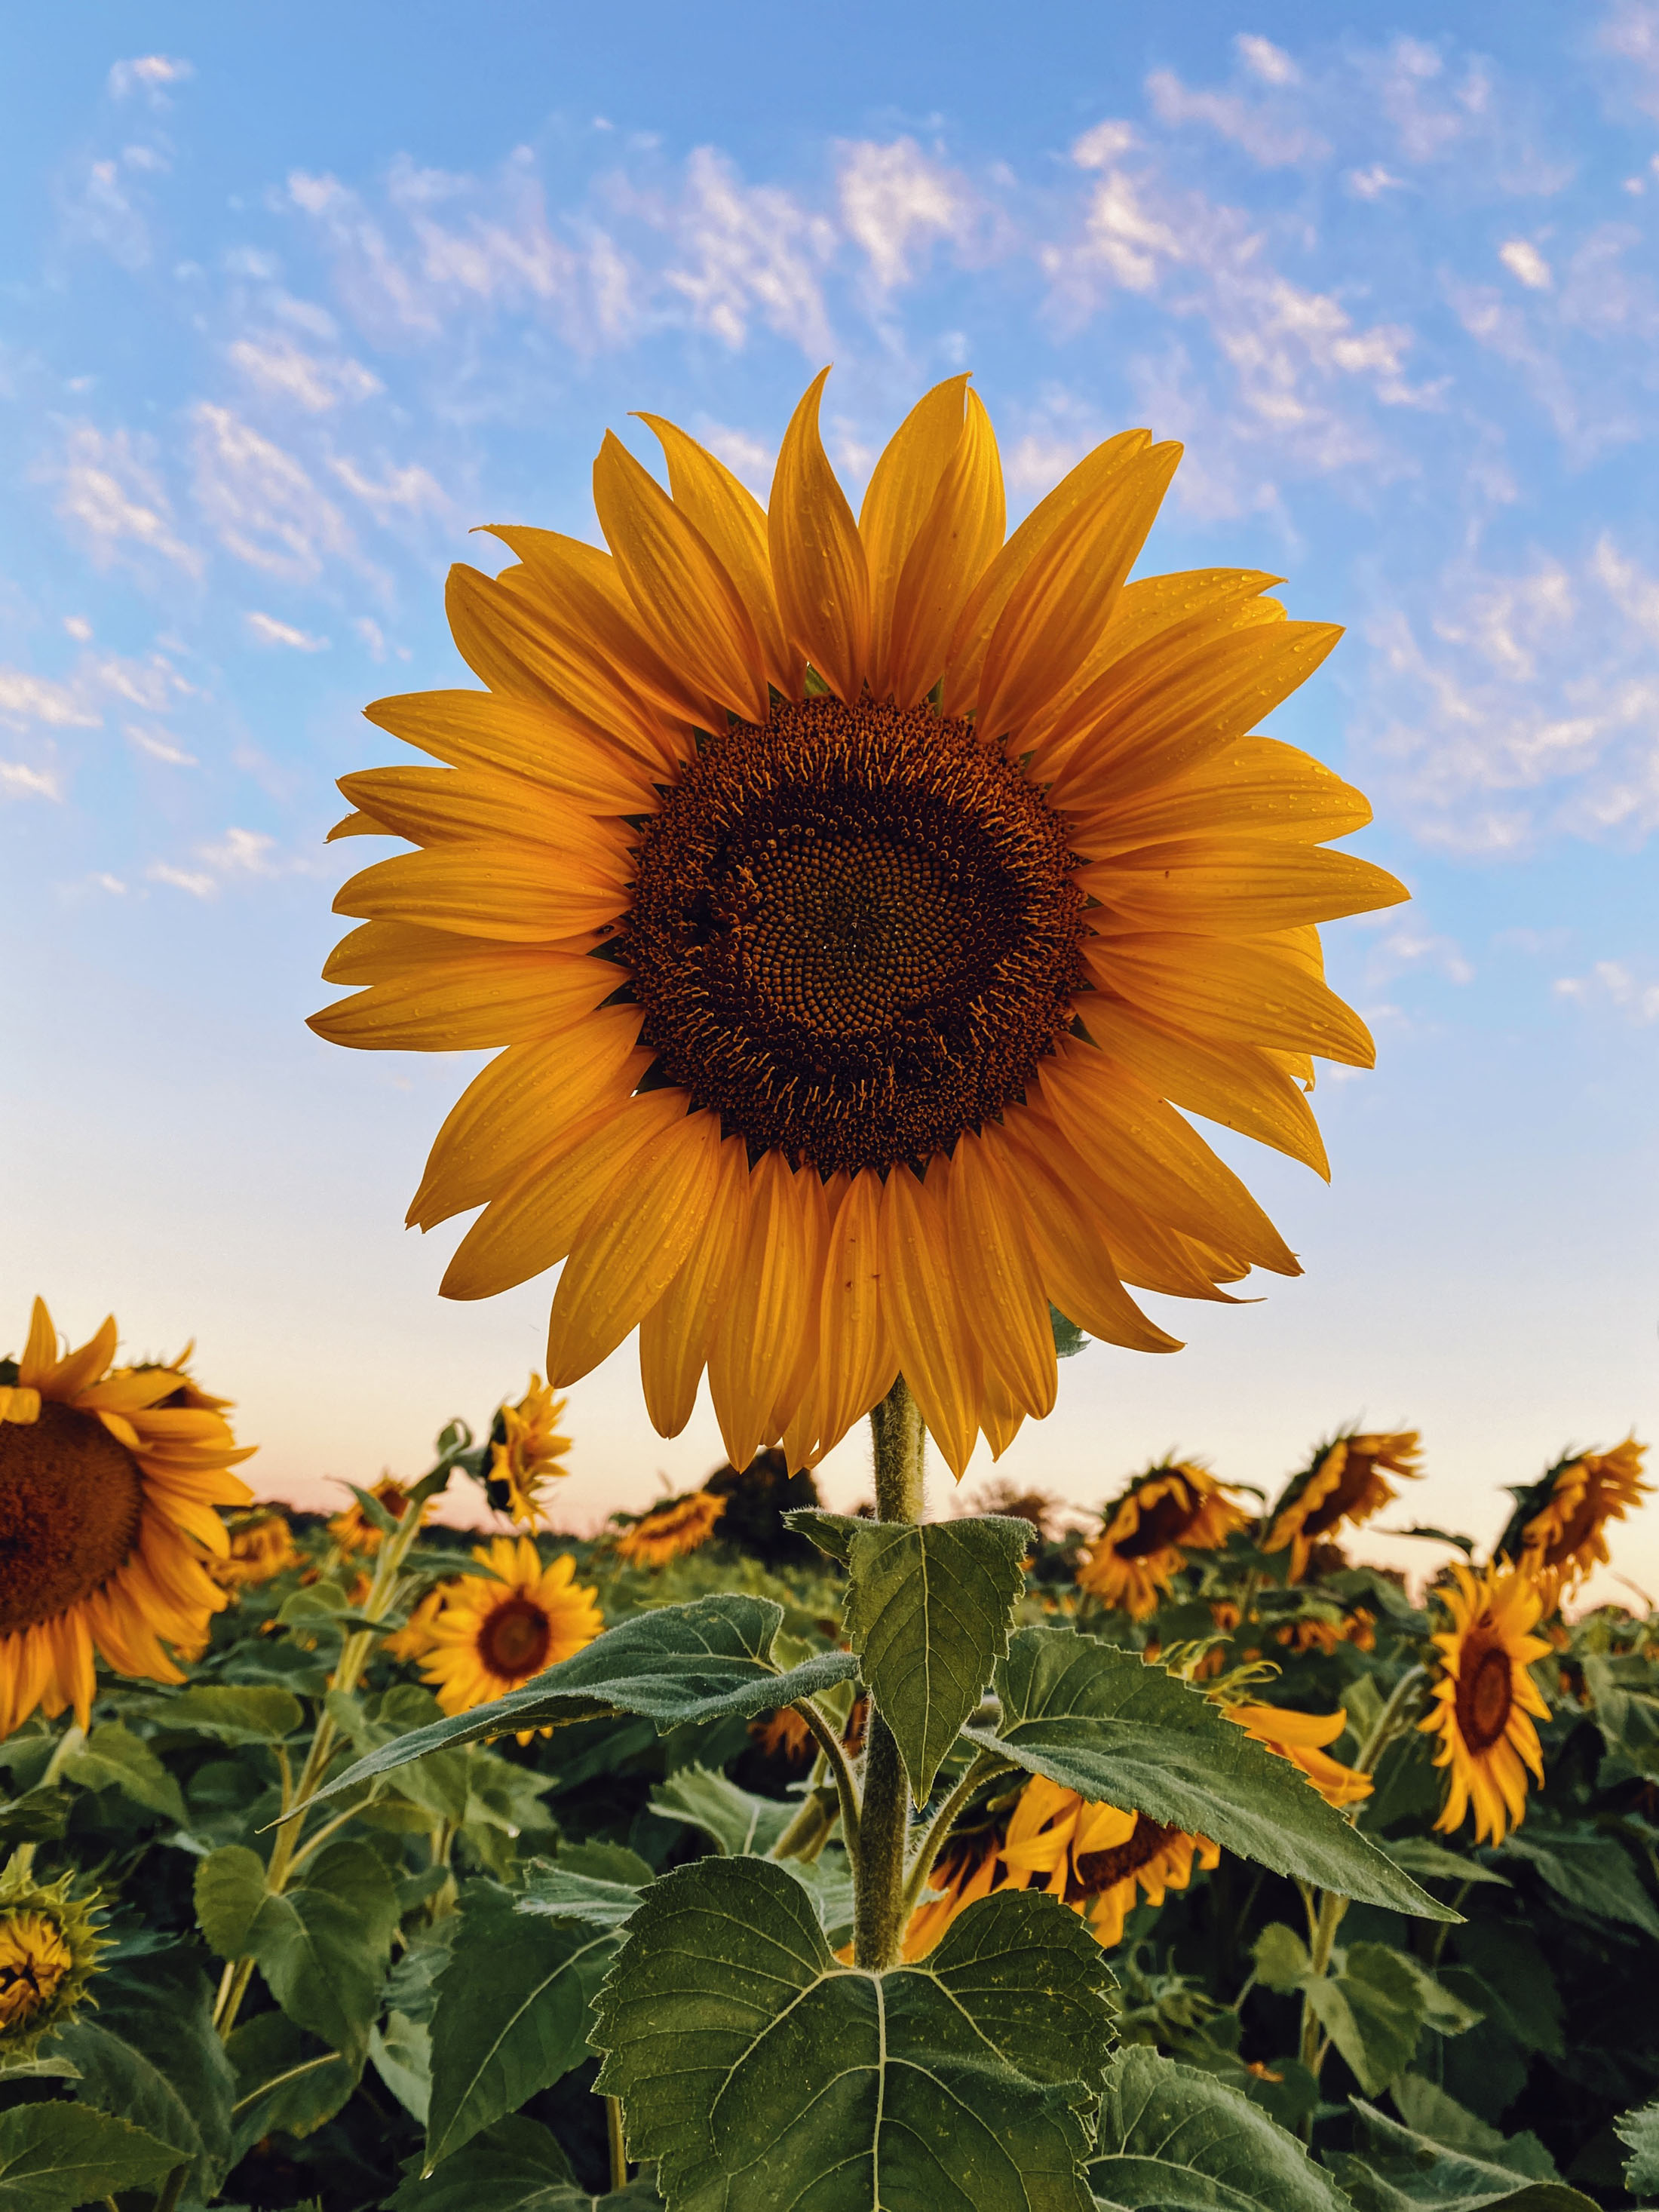 Sunflower in a field of flowers on a sunny day